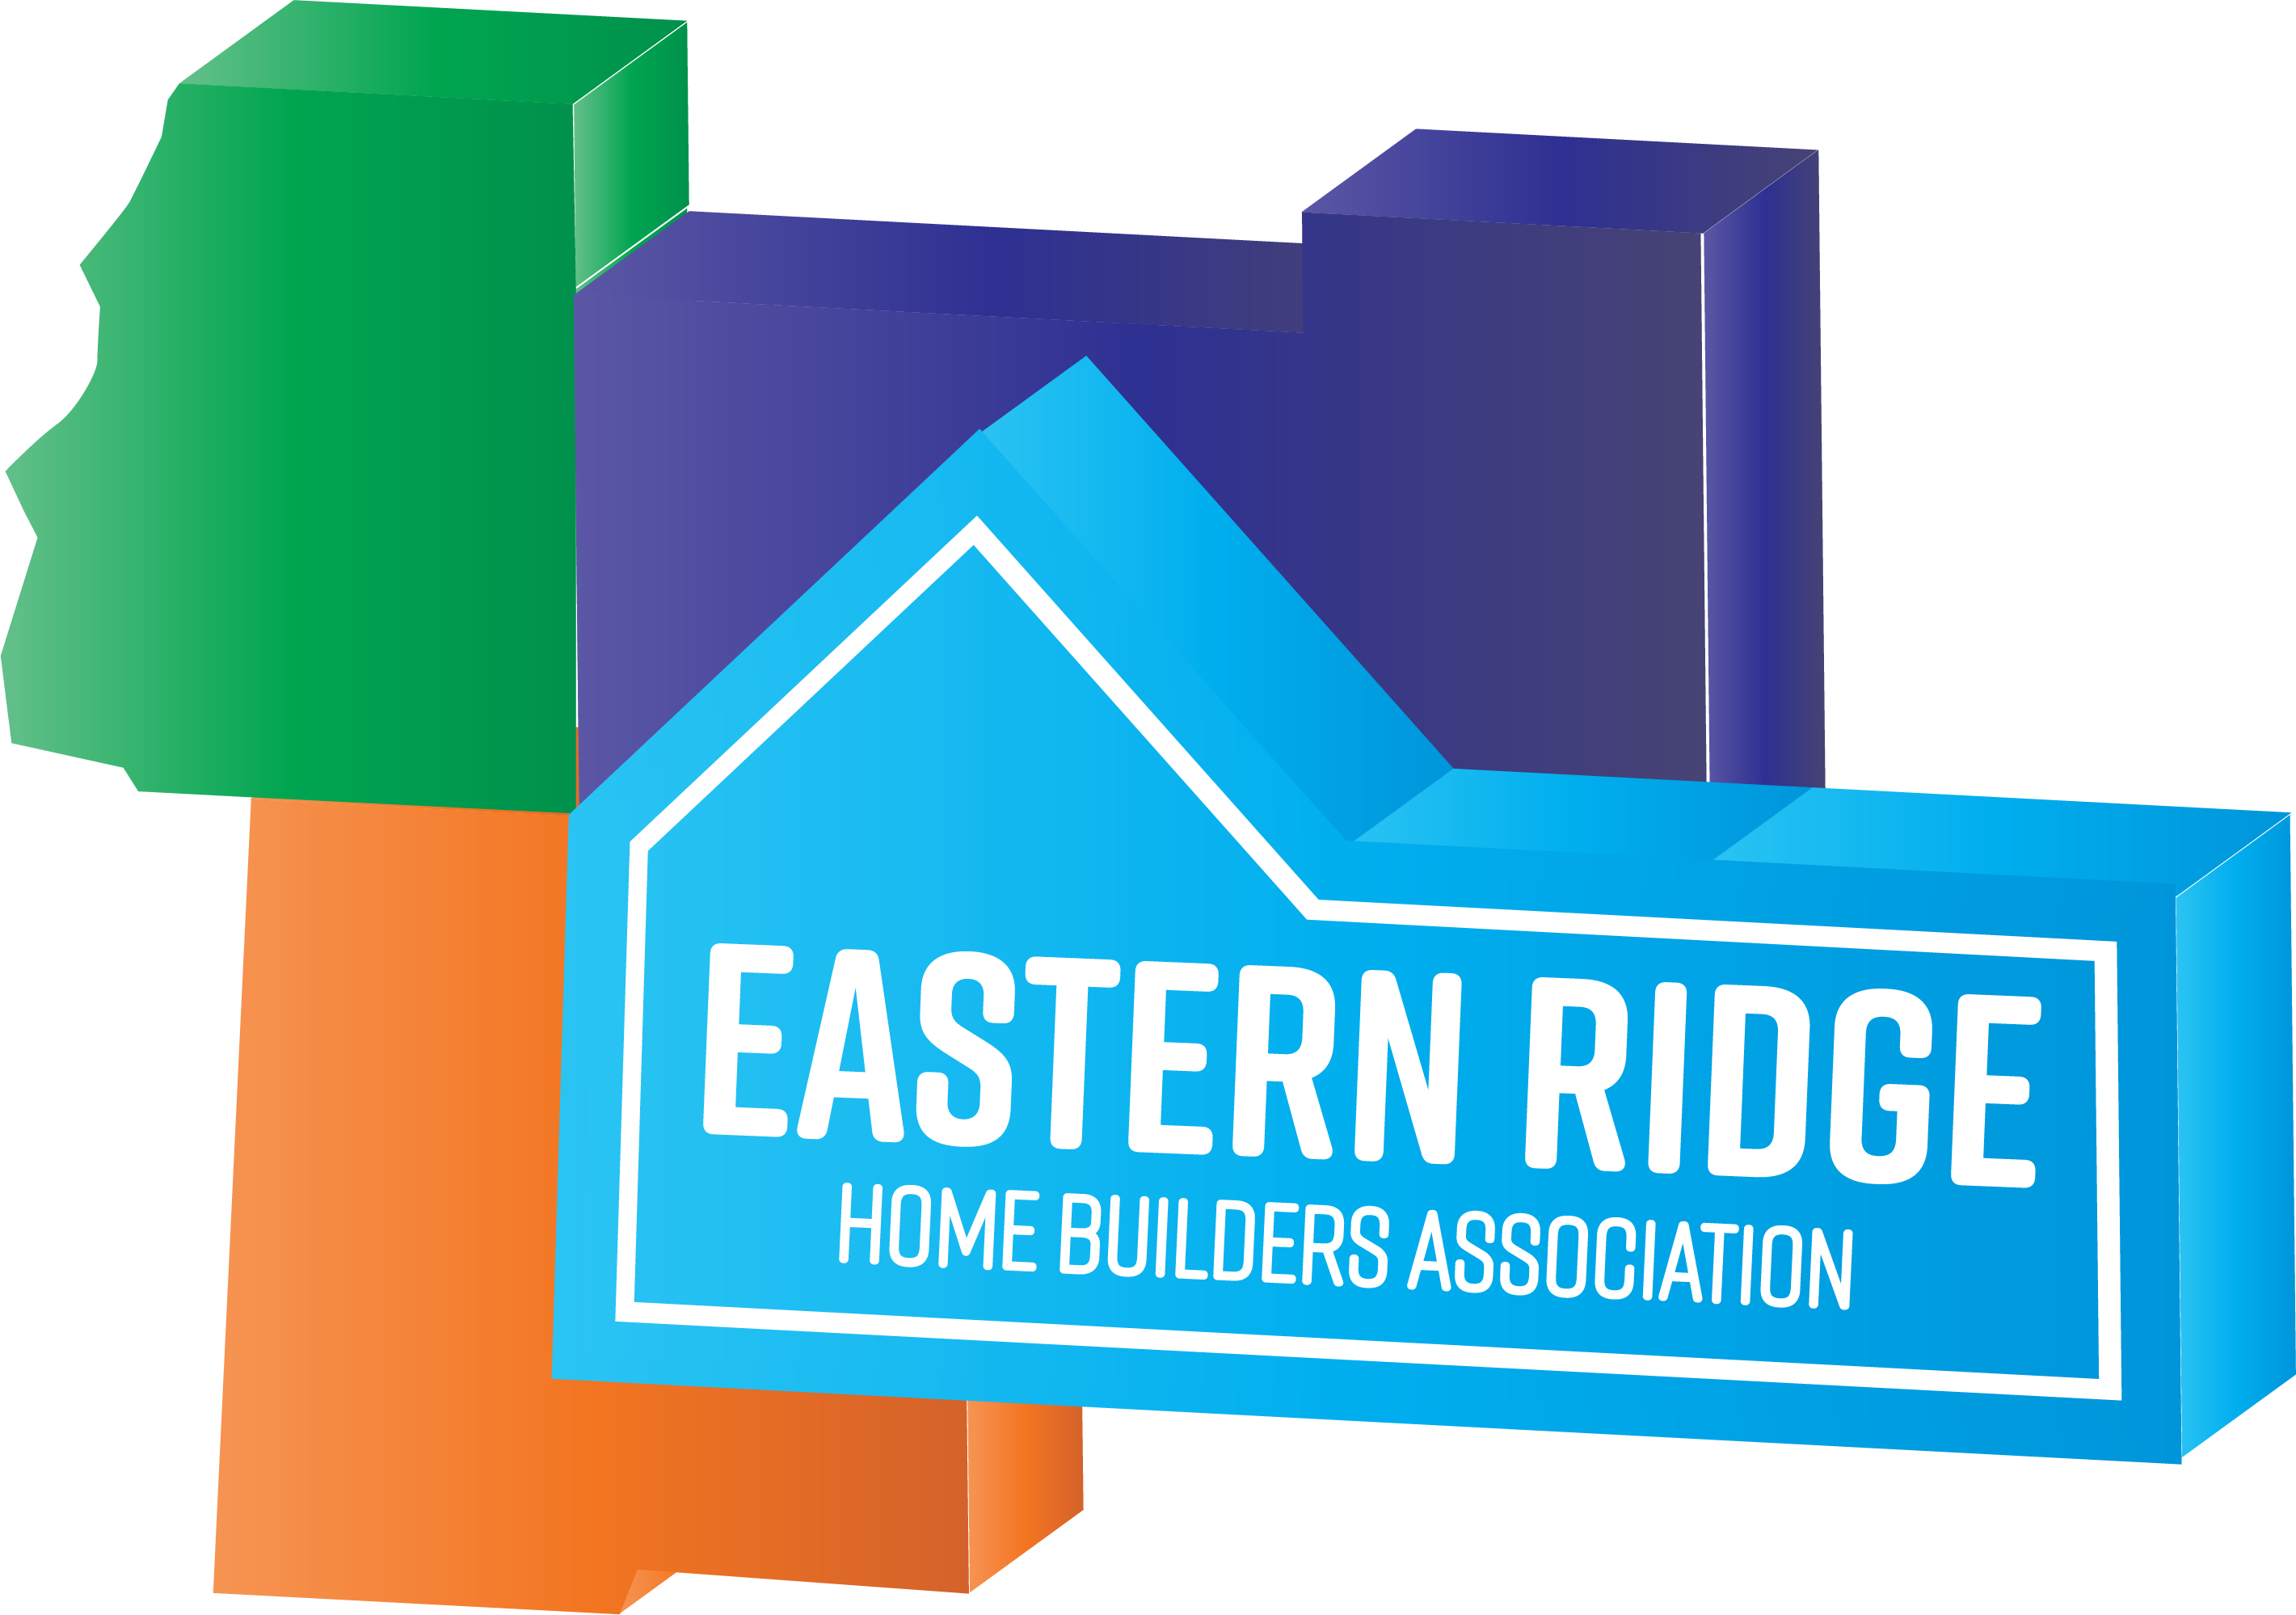 Eastern Ridge Home Builders Association